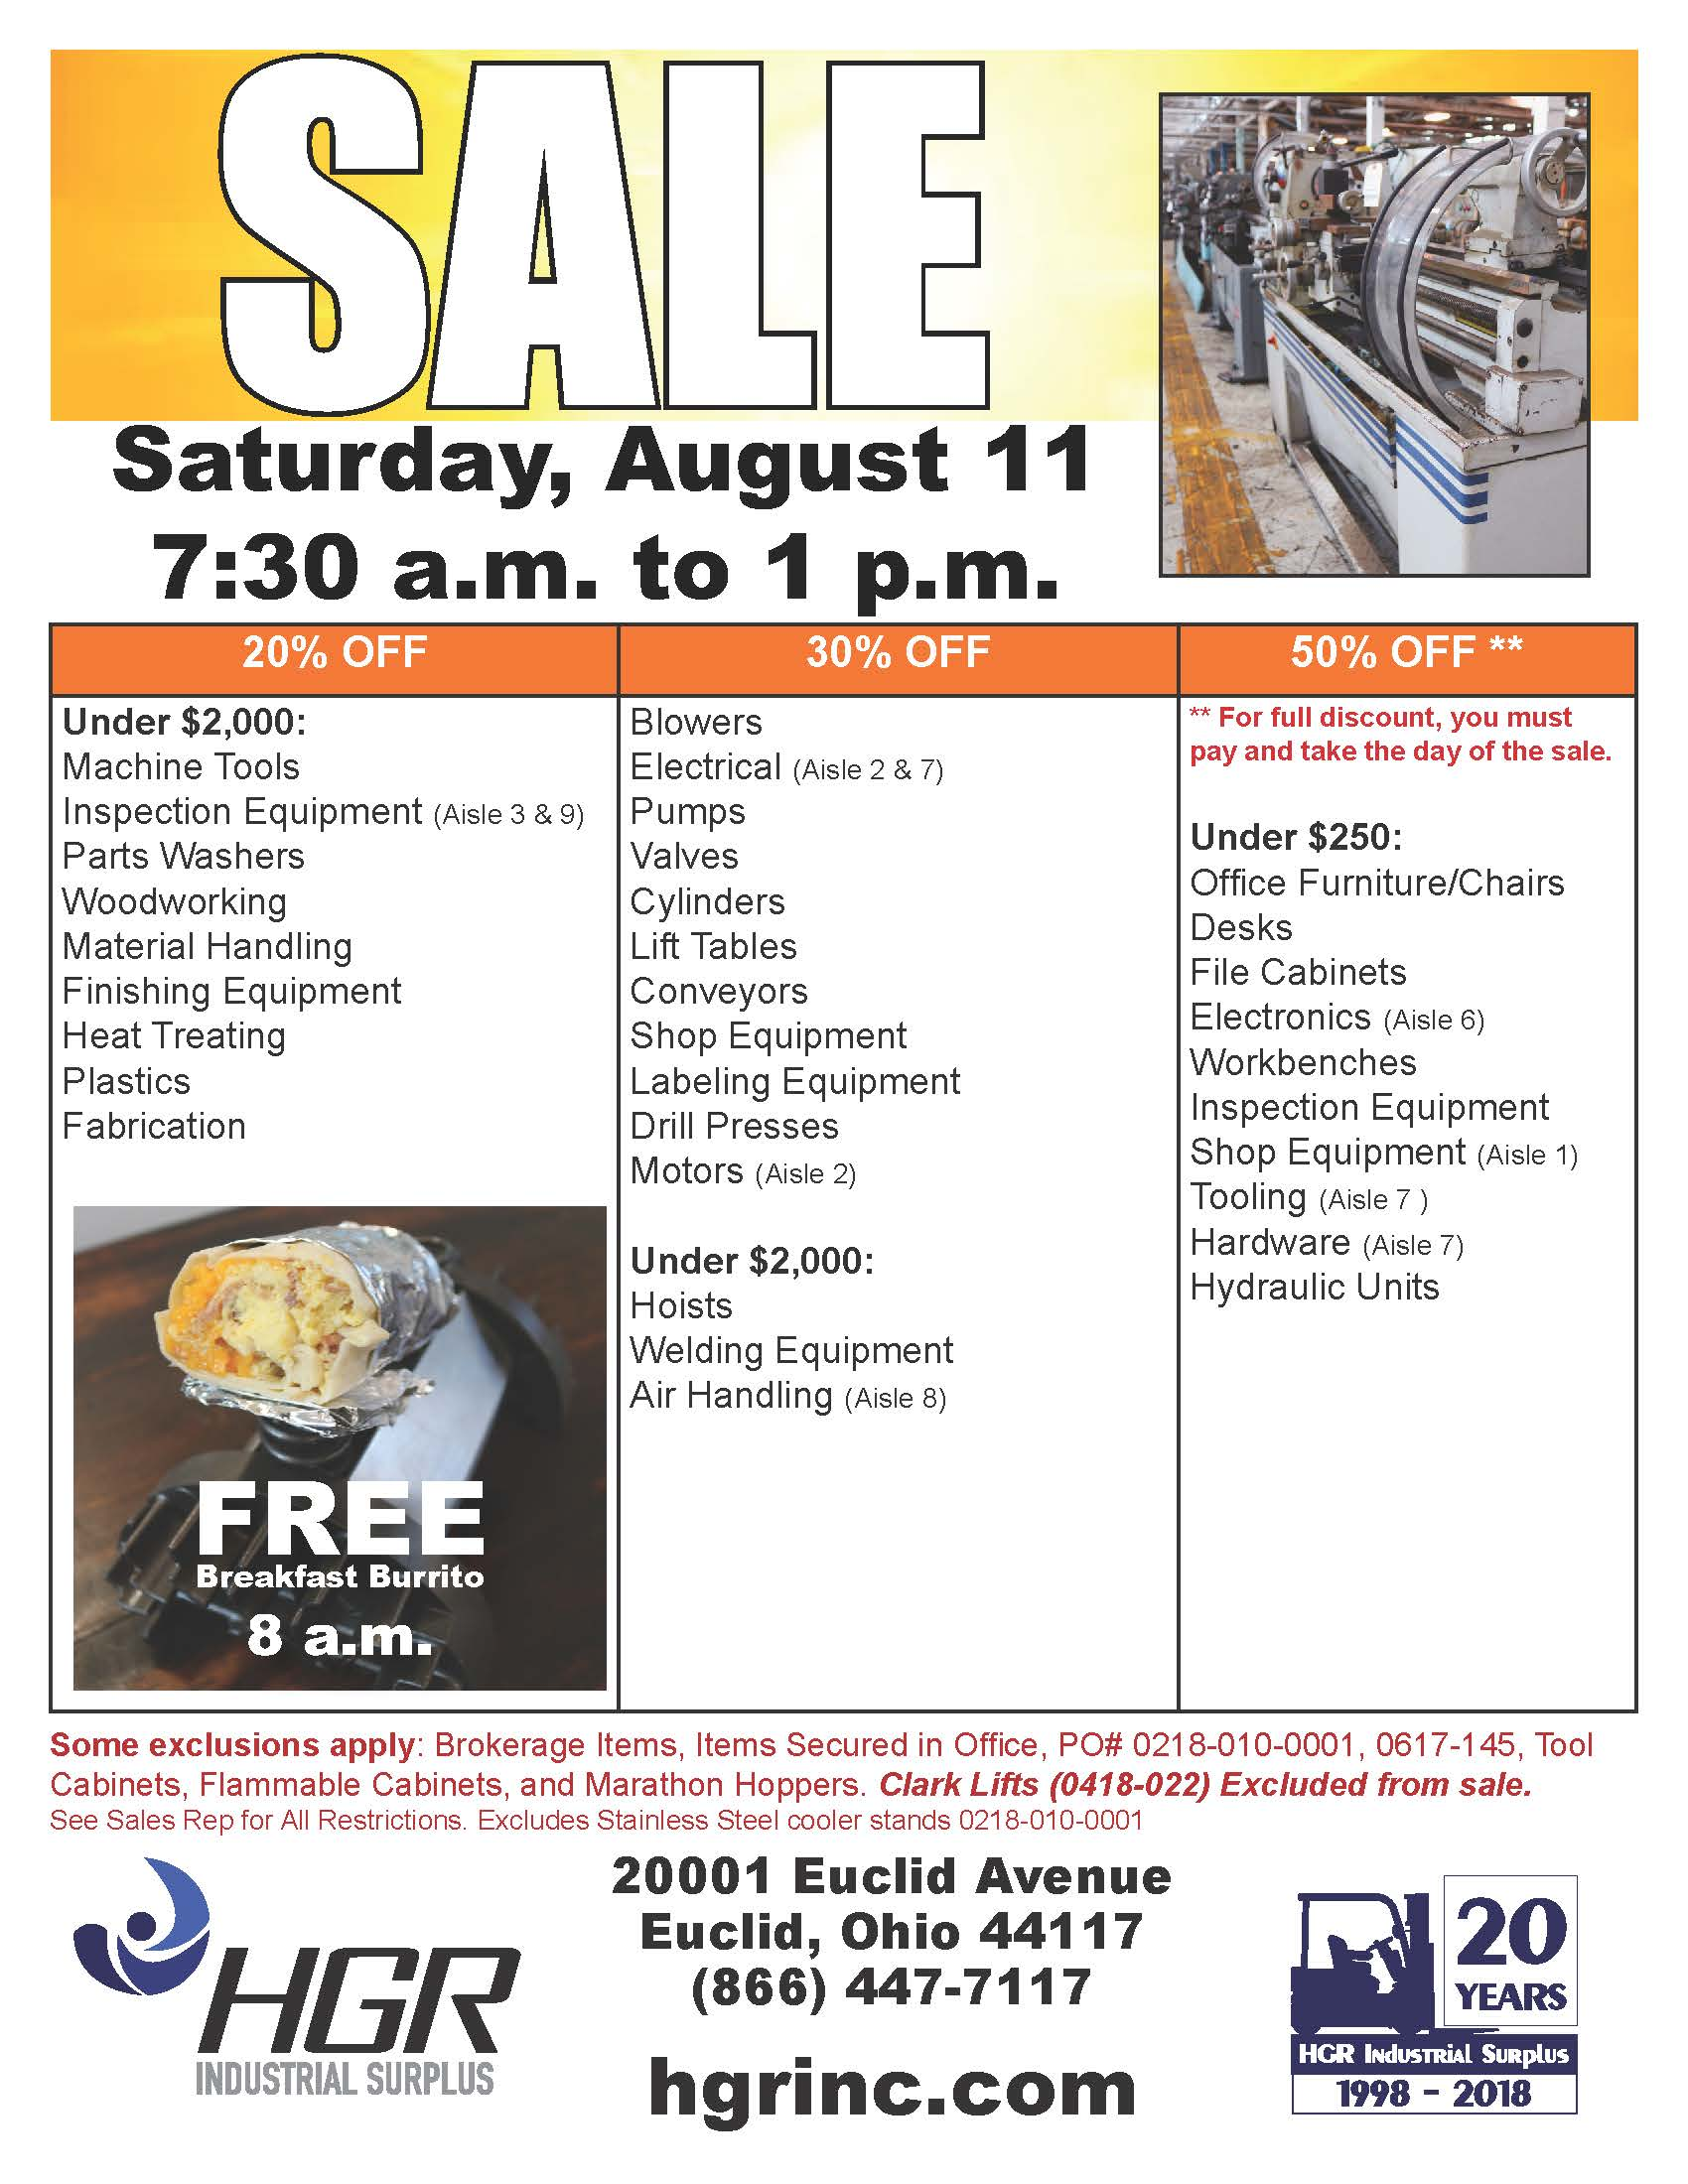 HGR Industrial Surplus August 2018 Saturday sale flyer